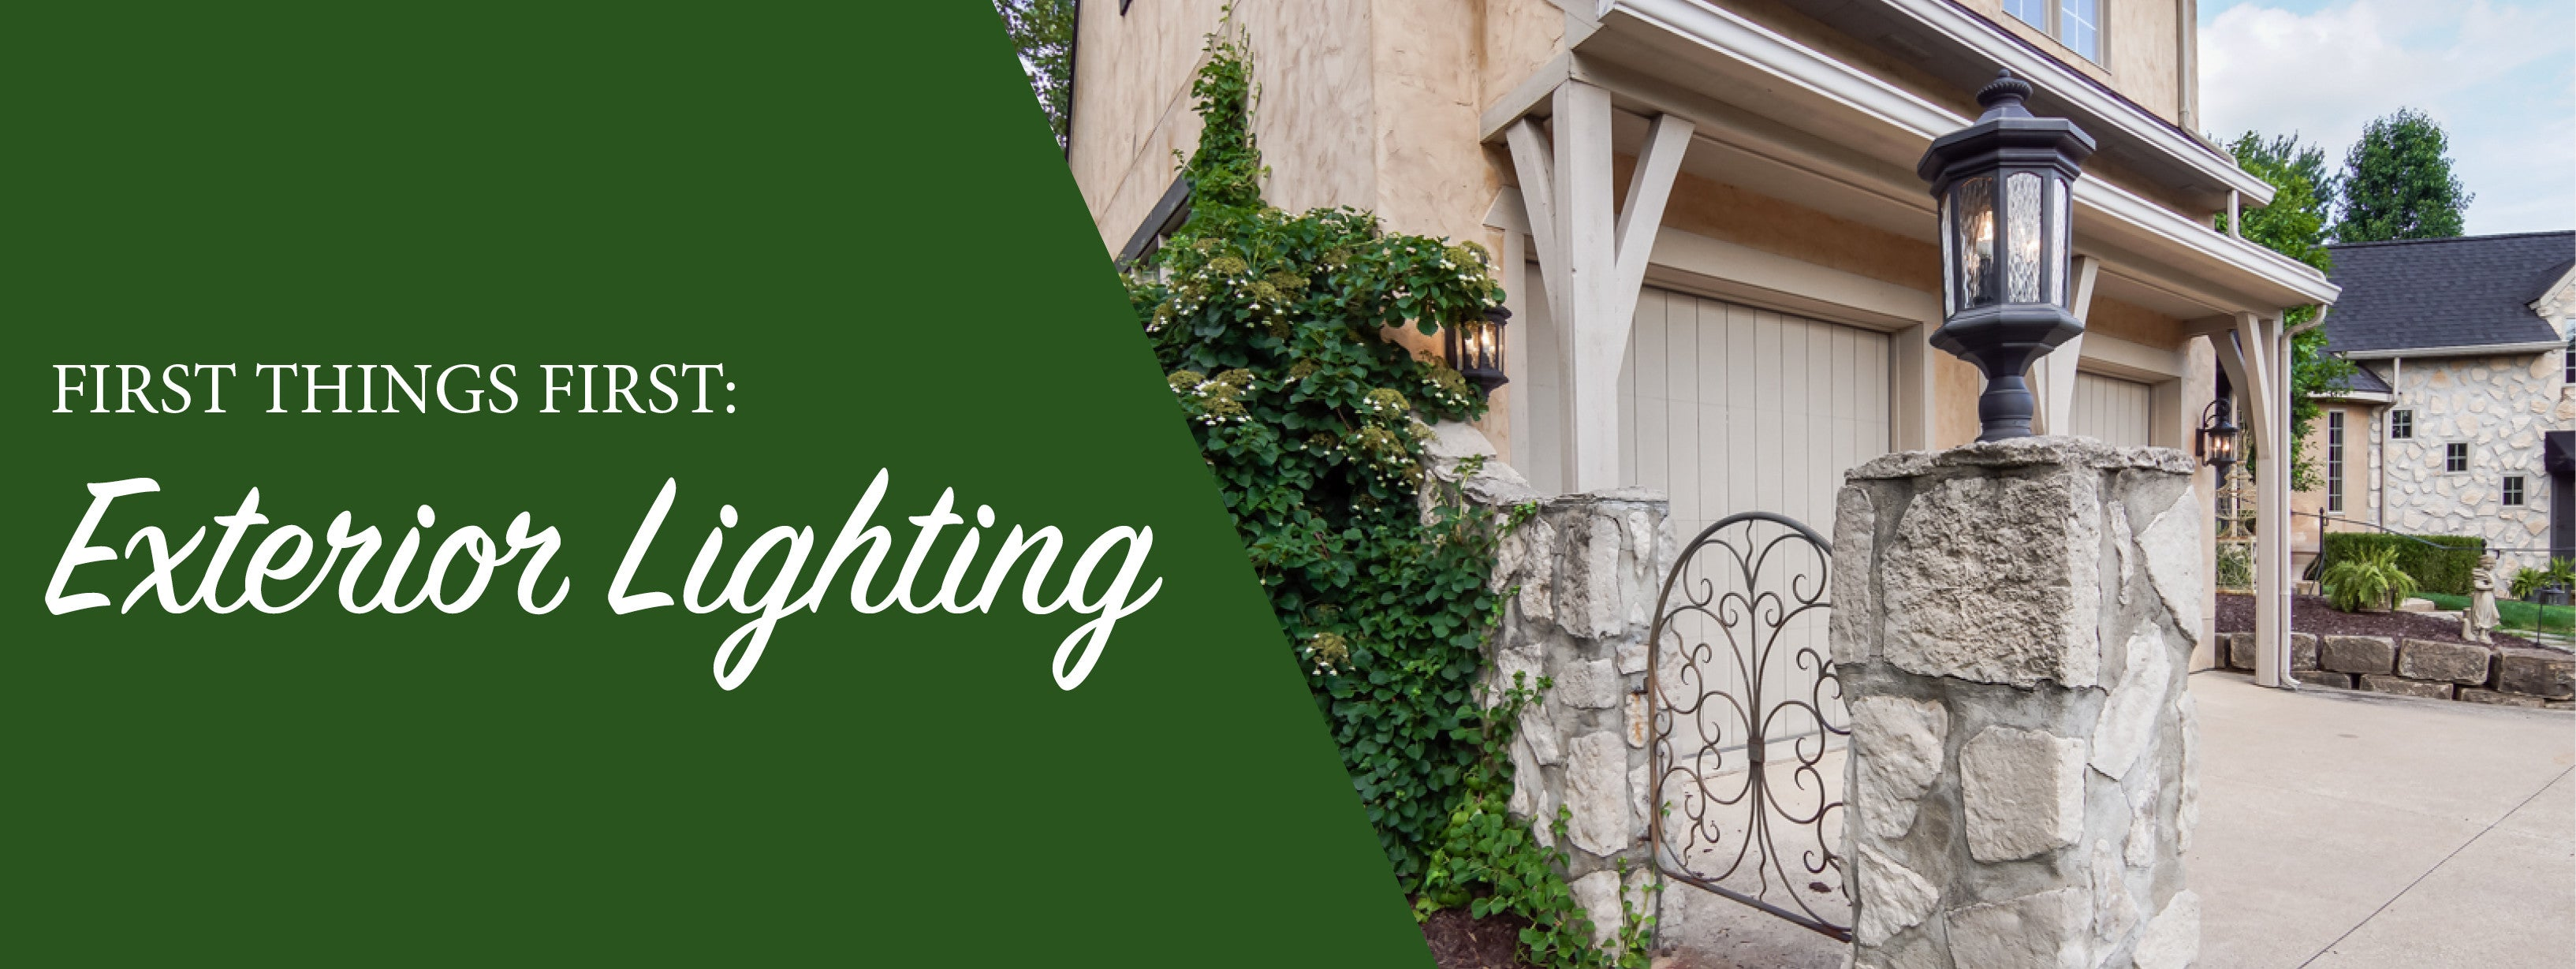 Blog: First Things First: Exterior Lighting